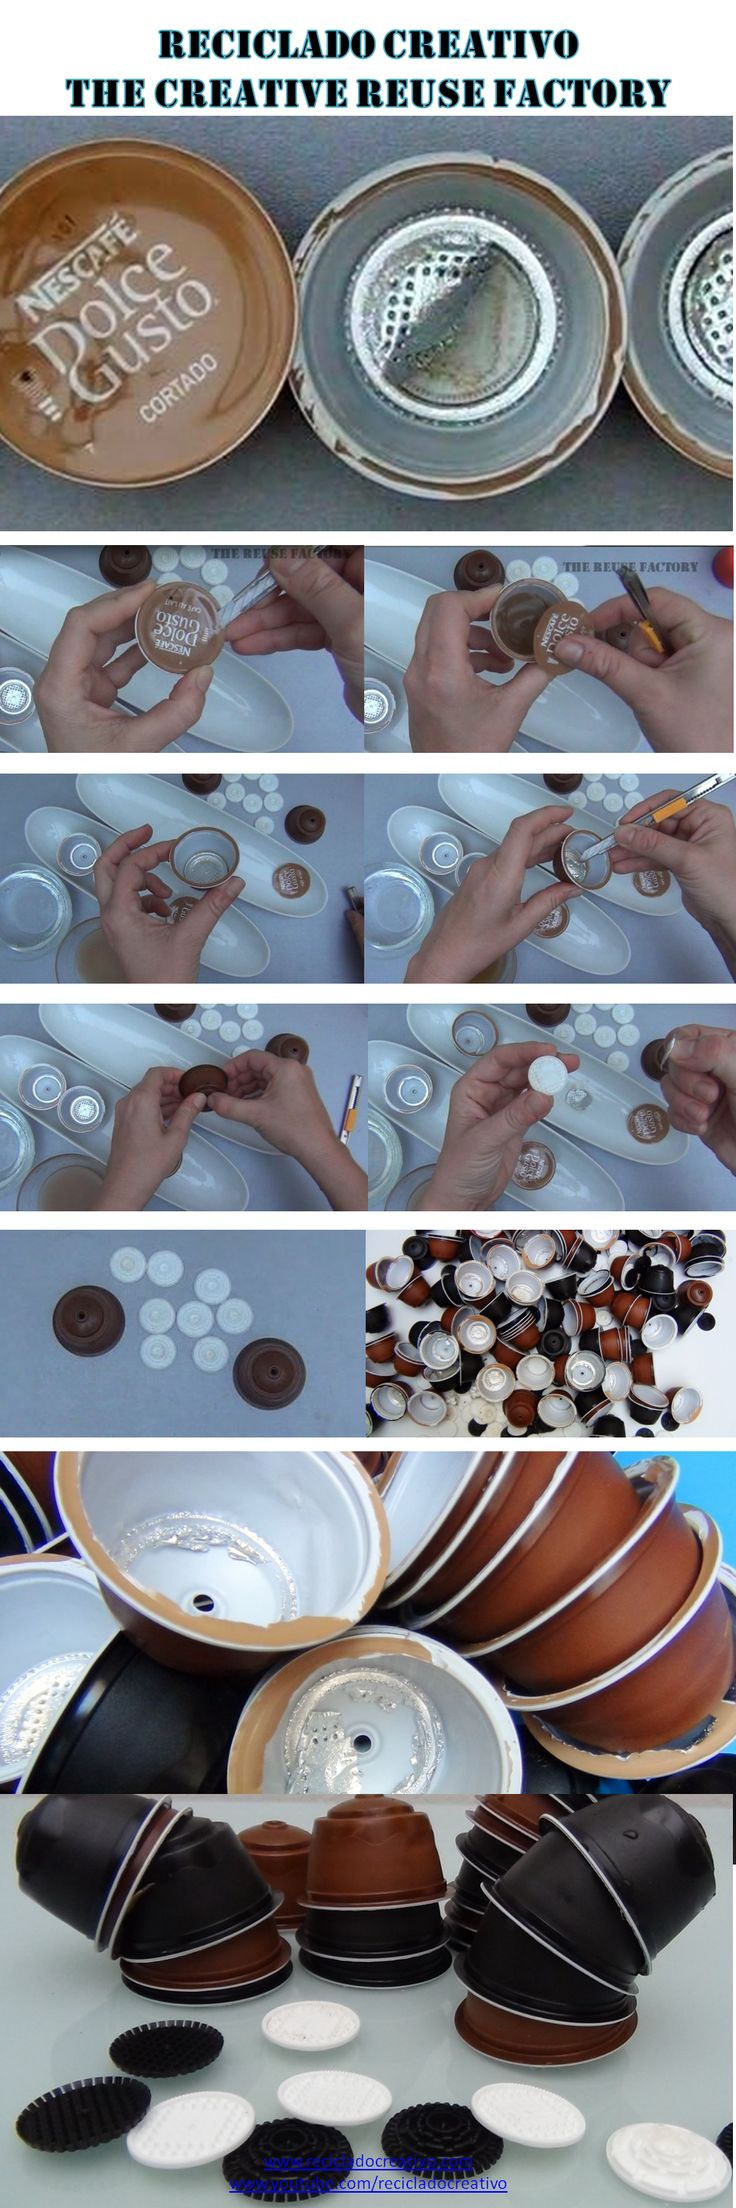 8.How to clean and prepare dolce gusto coffee capsules to recycle them - Cñomo limpiar y preparar para reciclar las cápsulas de café Dolce Gusto